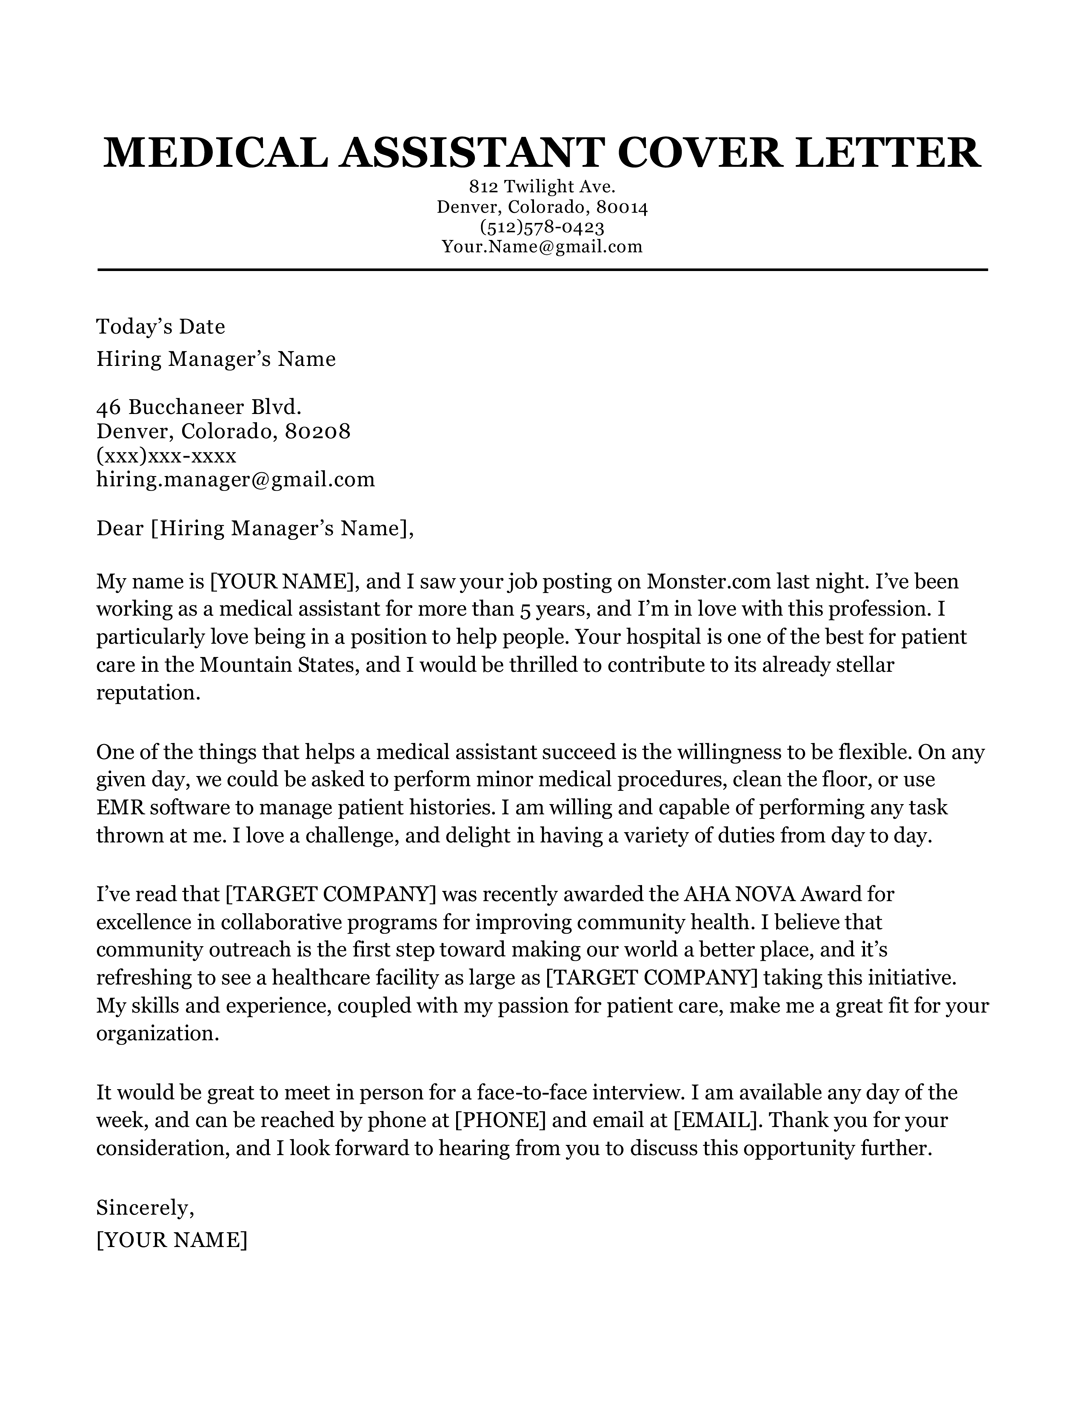 Doctor cover letter resume